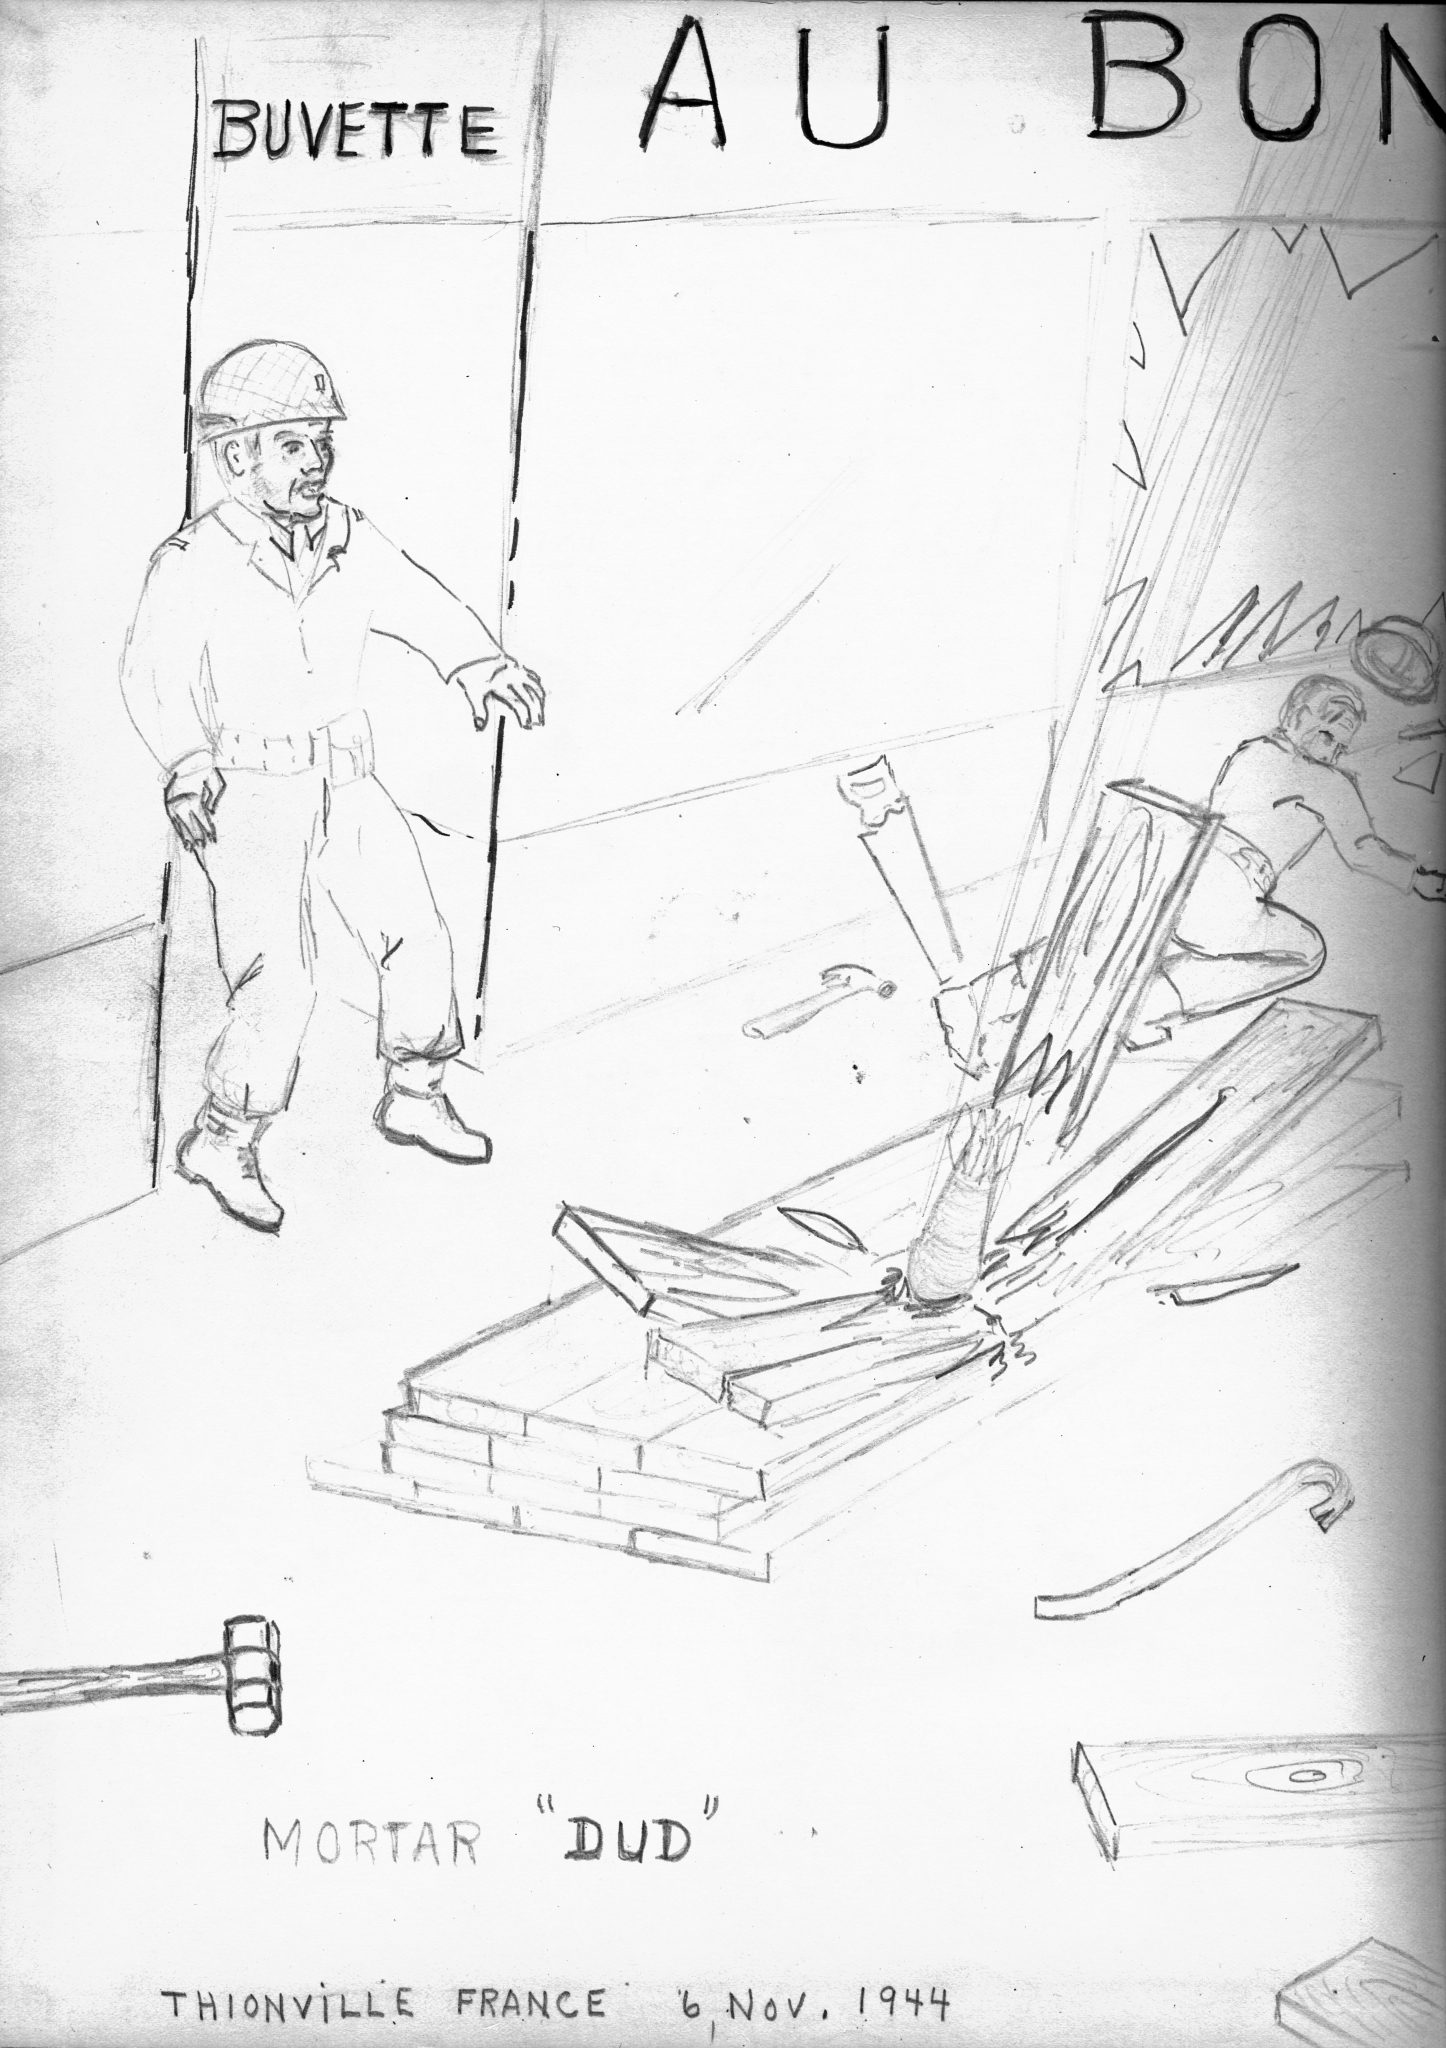 133d engineer bat battalion and one soldier s sketches of its Air Force Infantry a german mortar round surprises stesjkal and another soldier in thionville france in a sketch dated 6 november 1944 fortunately the round was a dud and